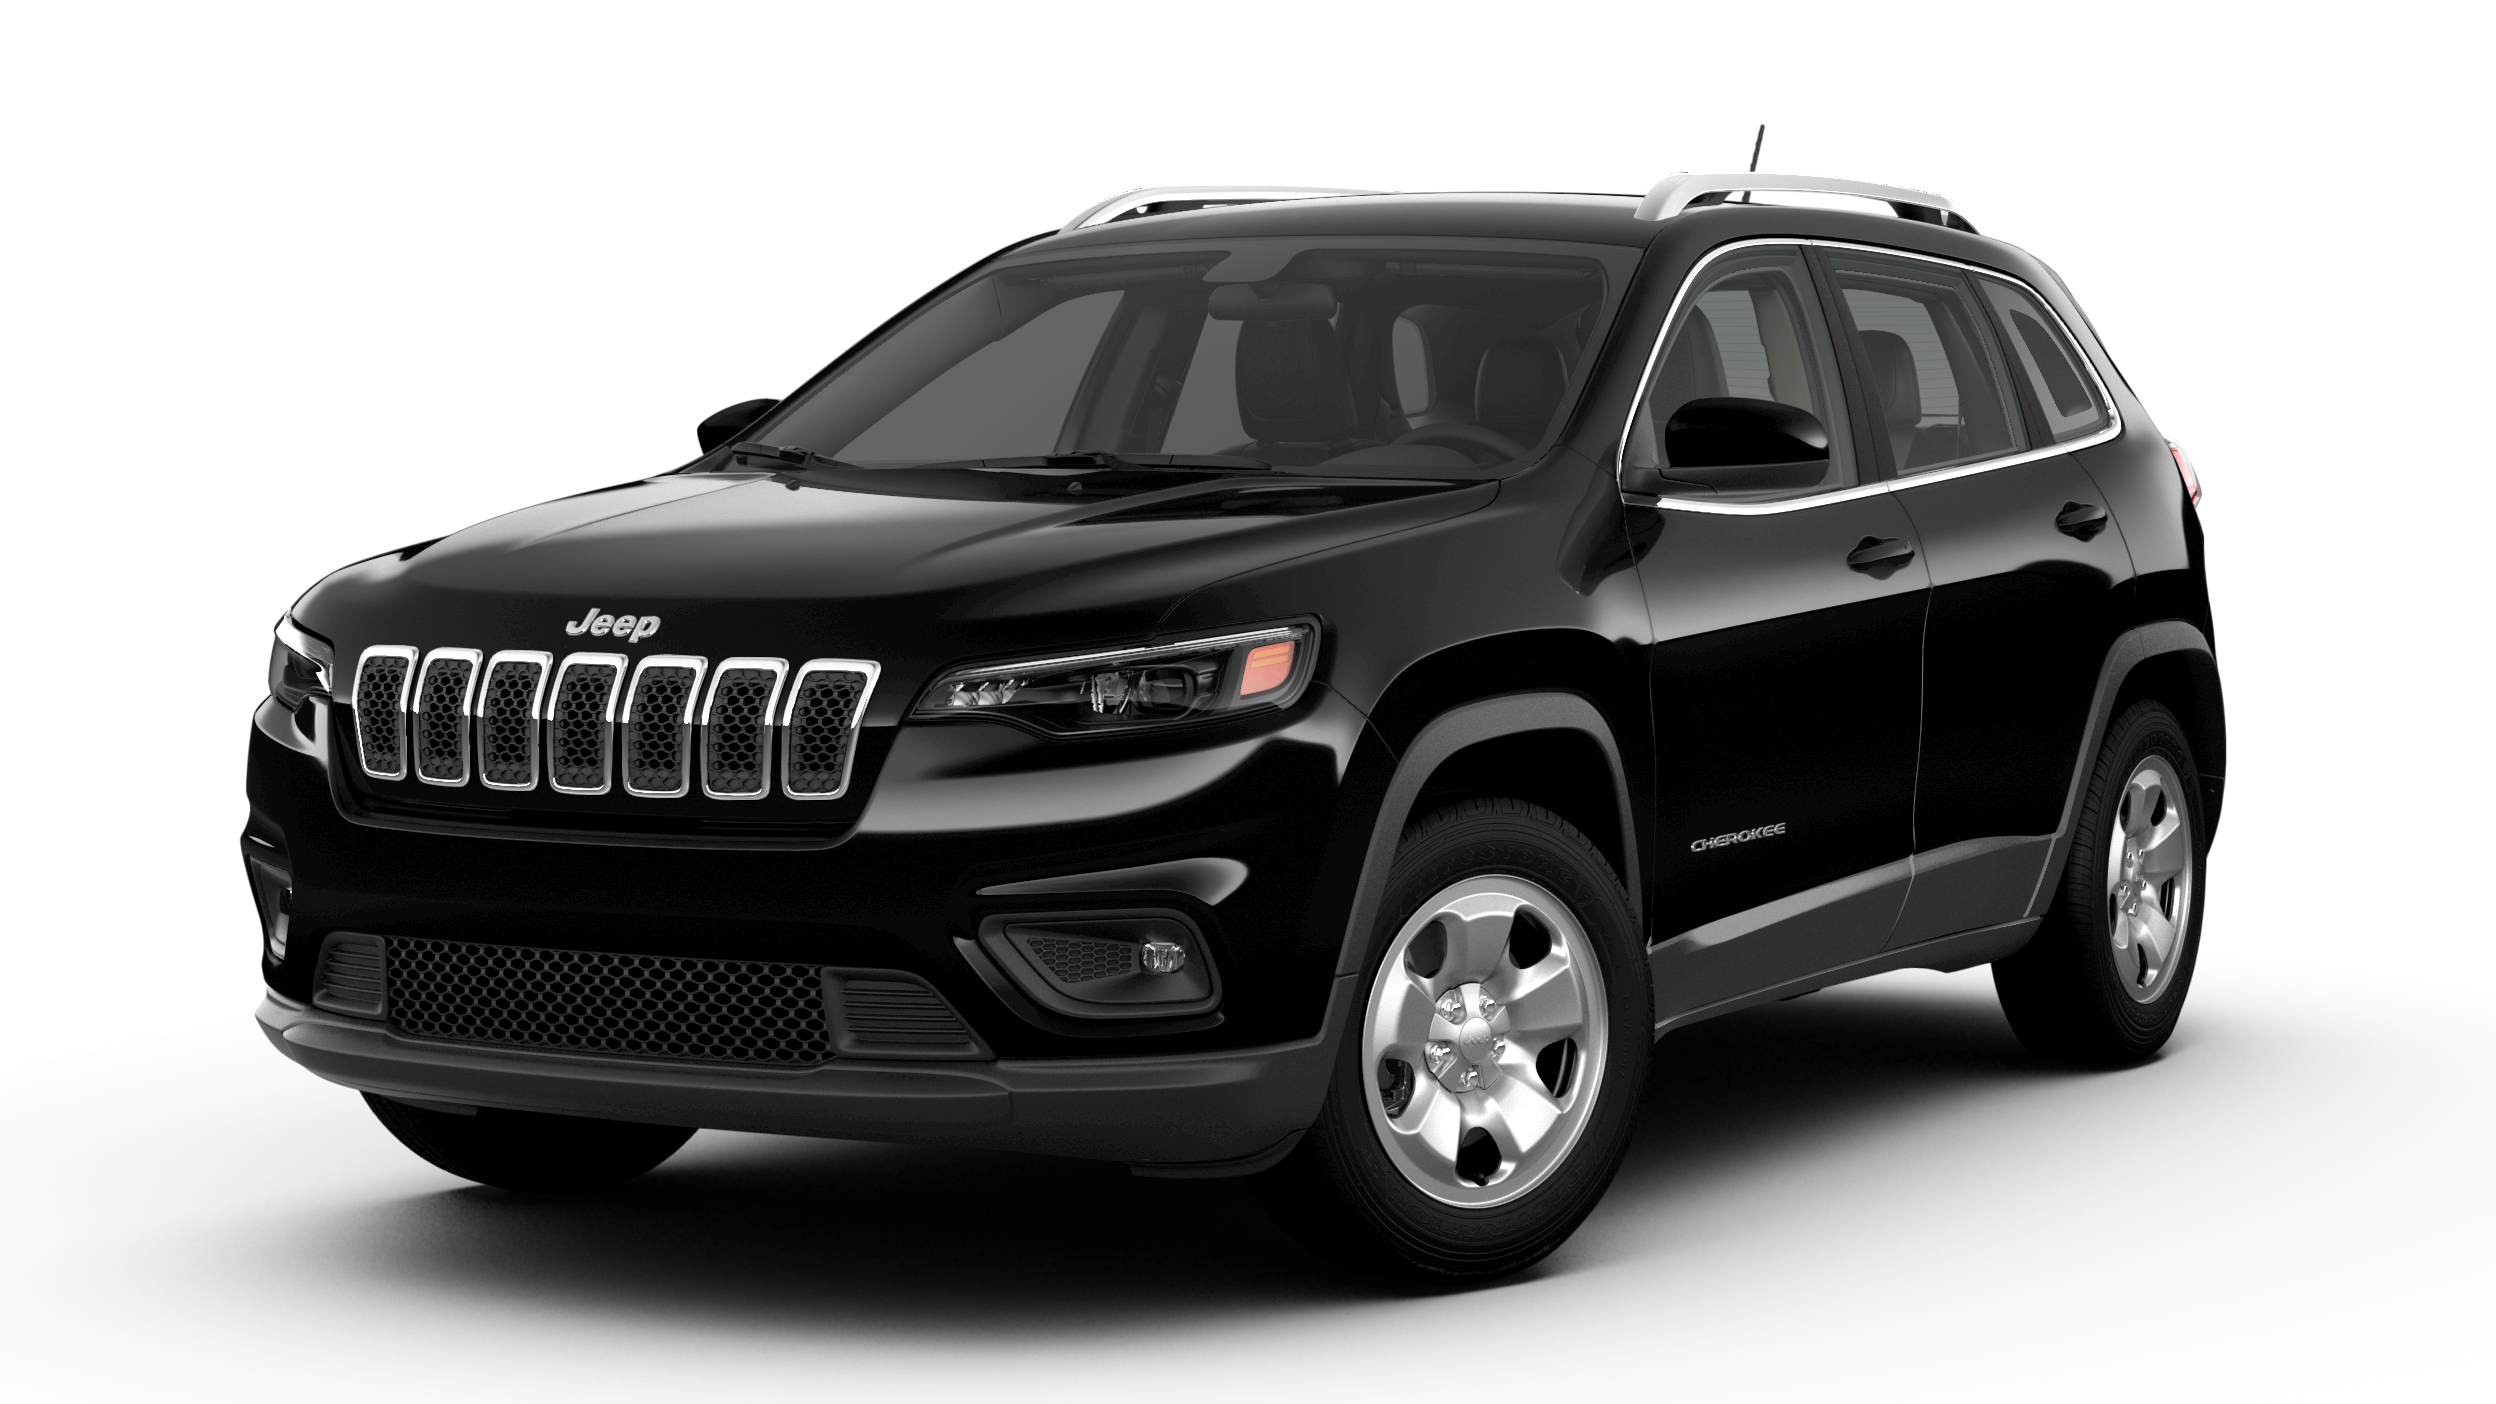 2019 Jeep Cherokee near me | In Houston, TX